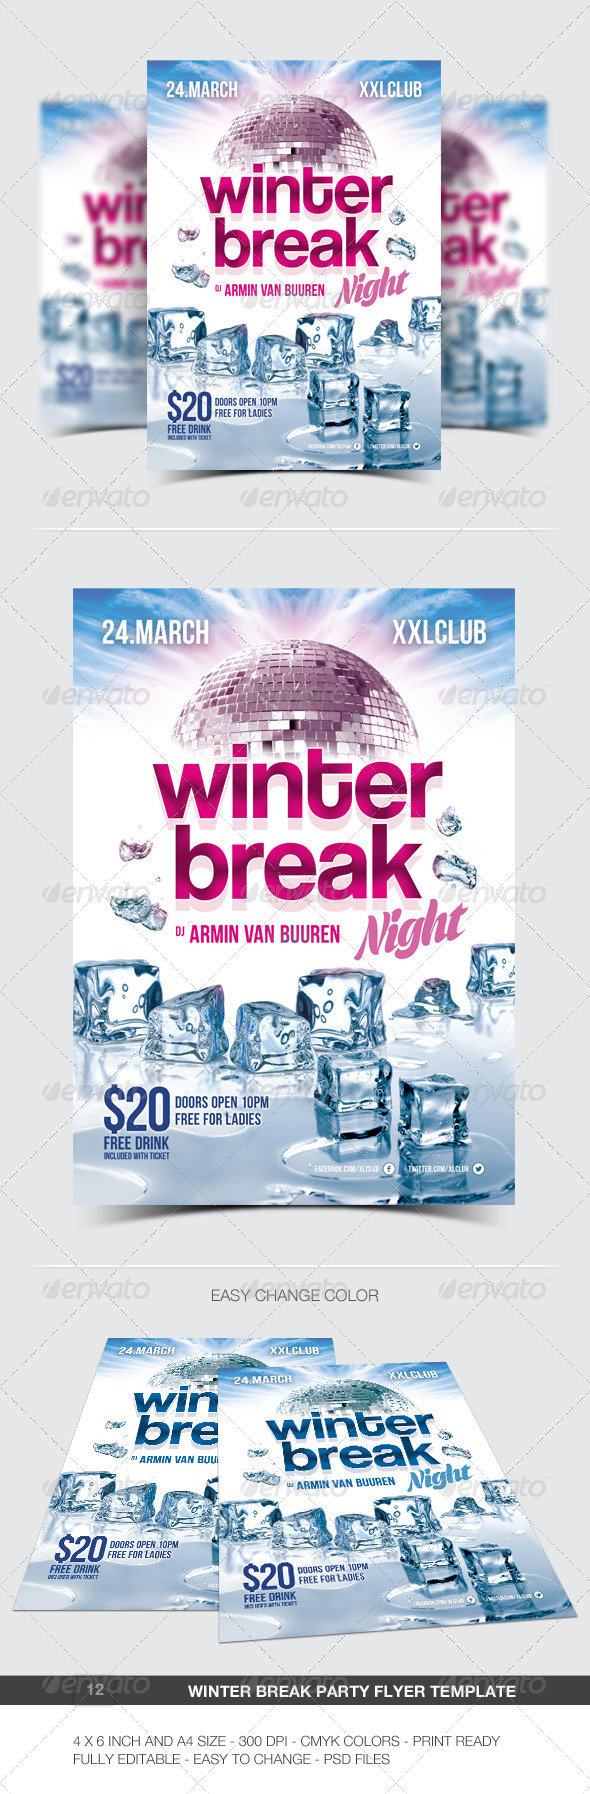 GraphicRiver Winter Break Party Flyer Poster 12 6885830